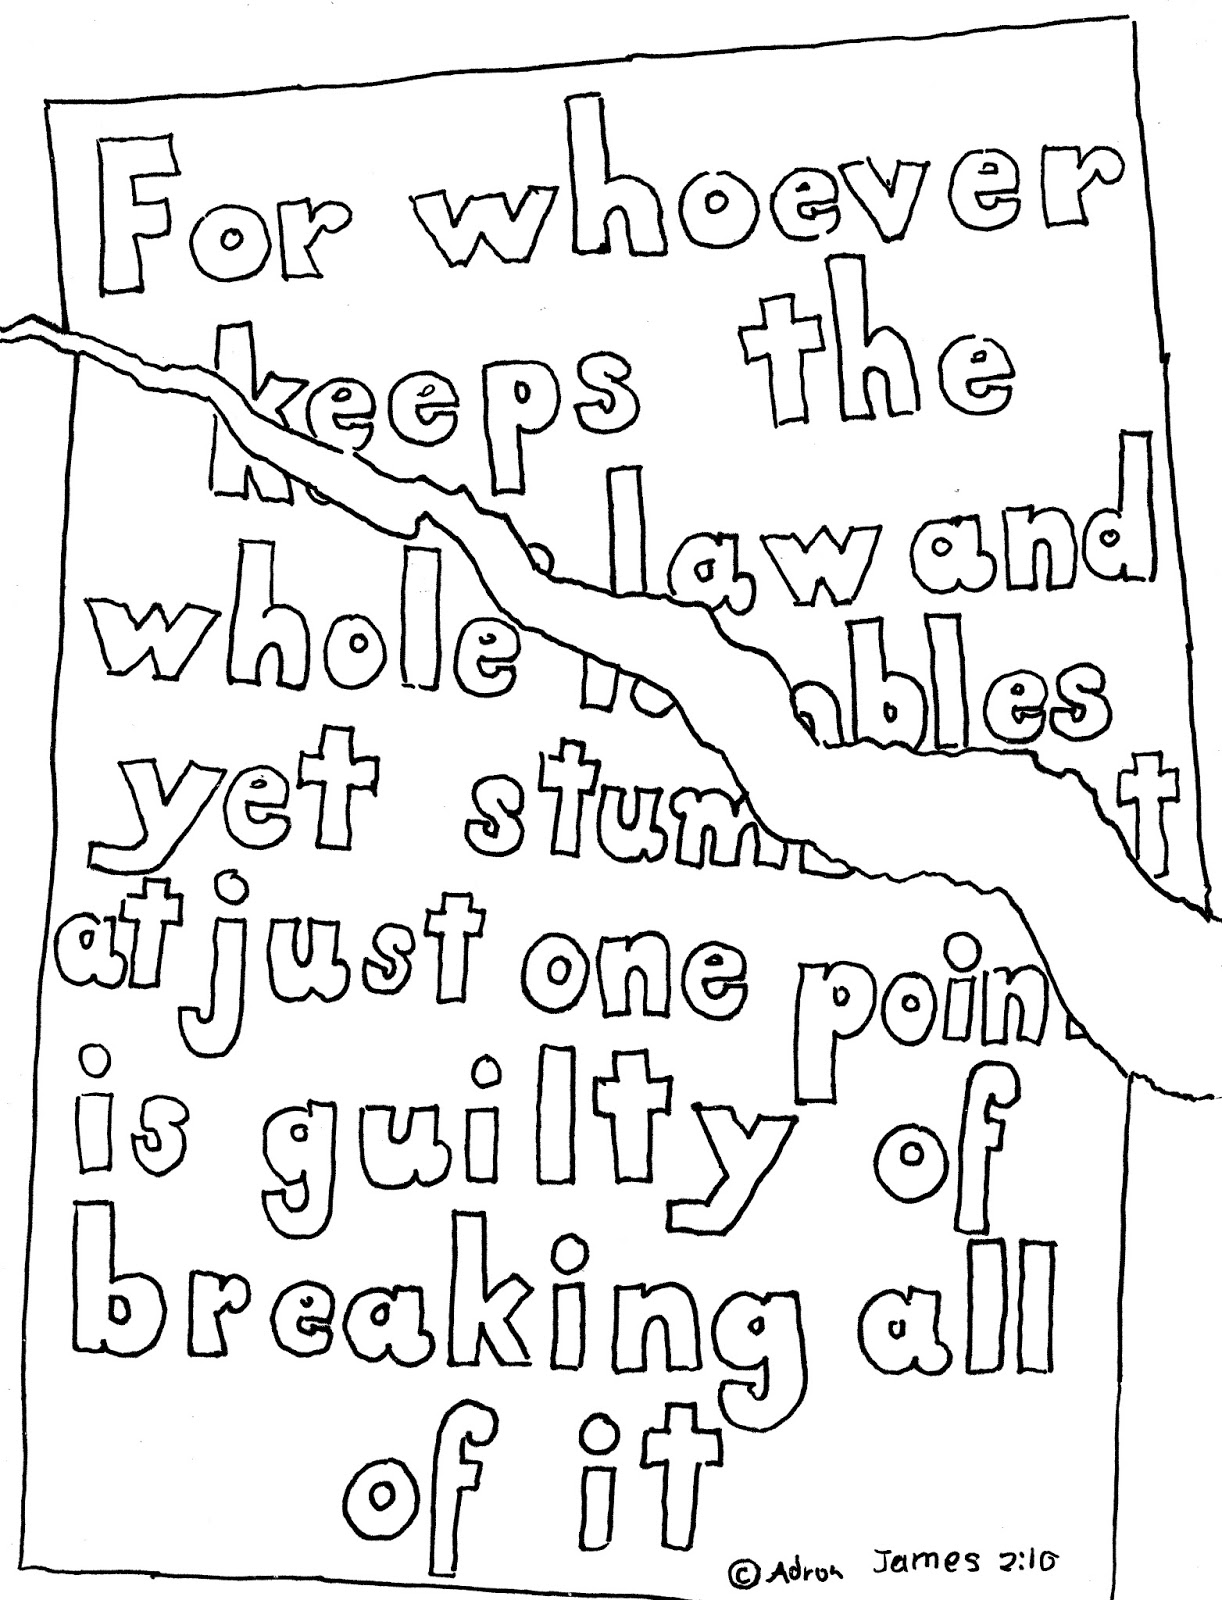 awana coloring pages - coloring pages for kids by mr adron james 2 10 print and